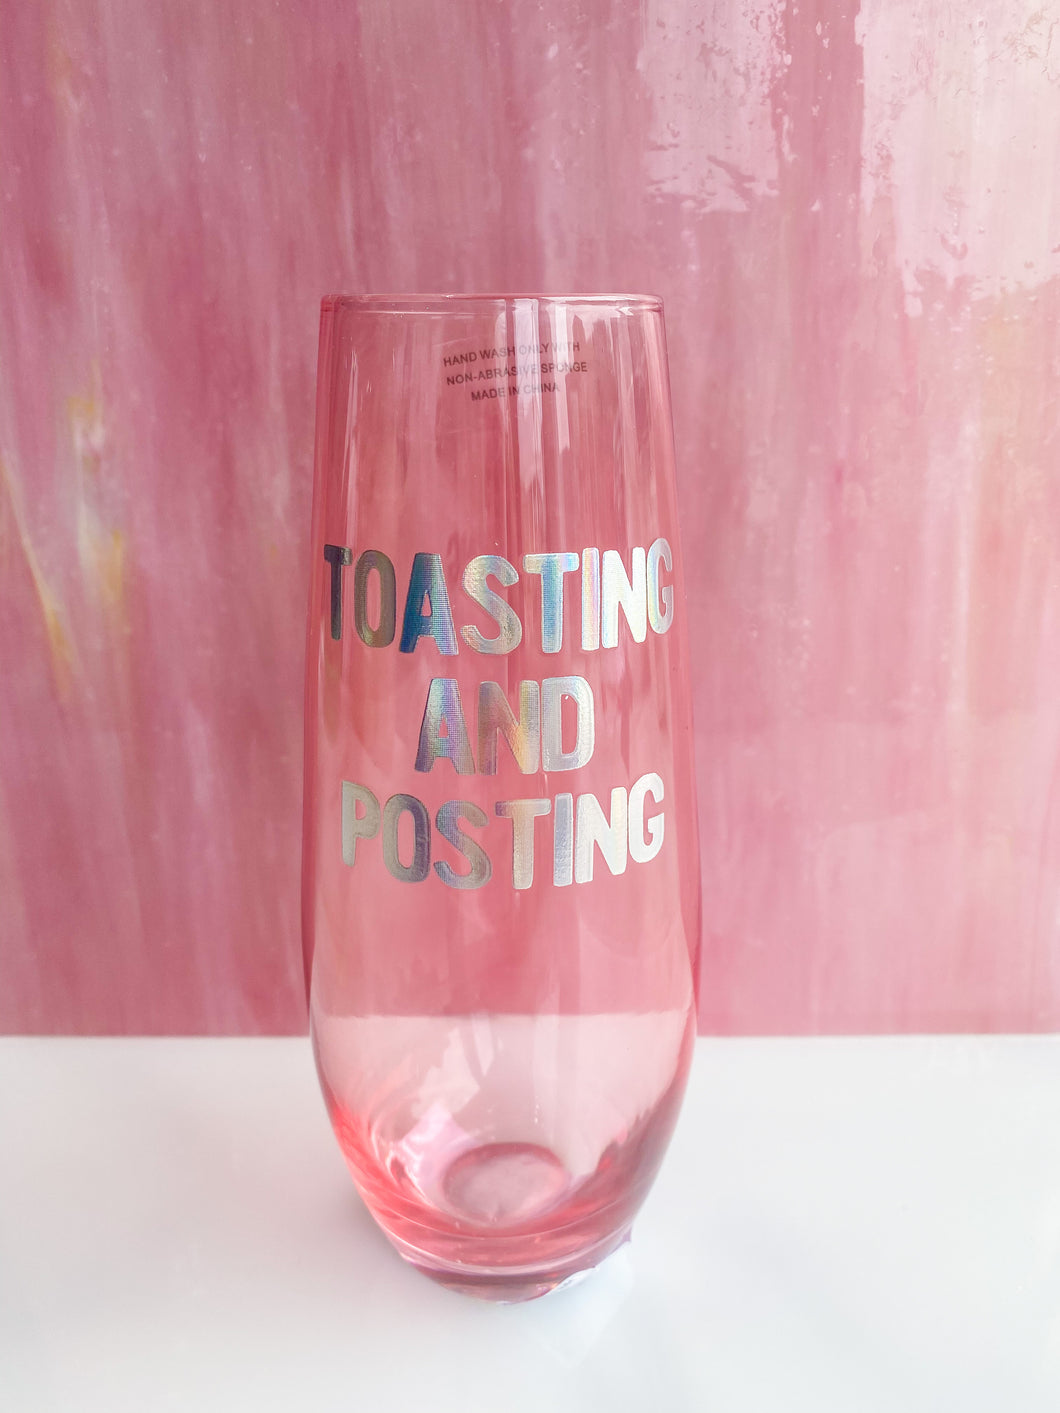 Toasting and Posting Champagne Flute